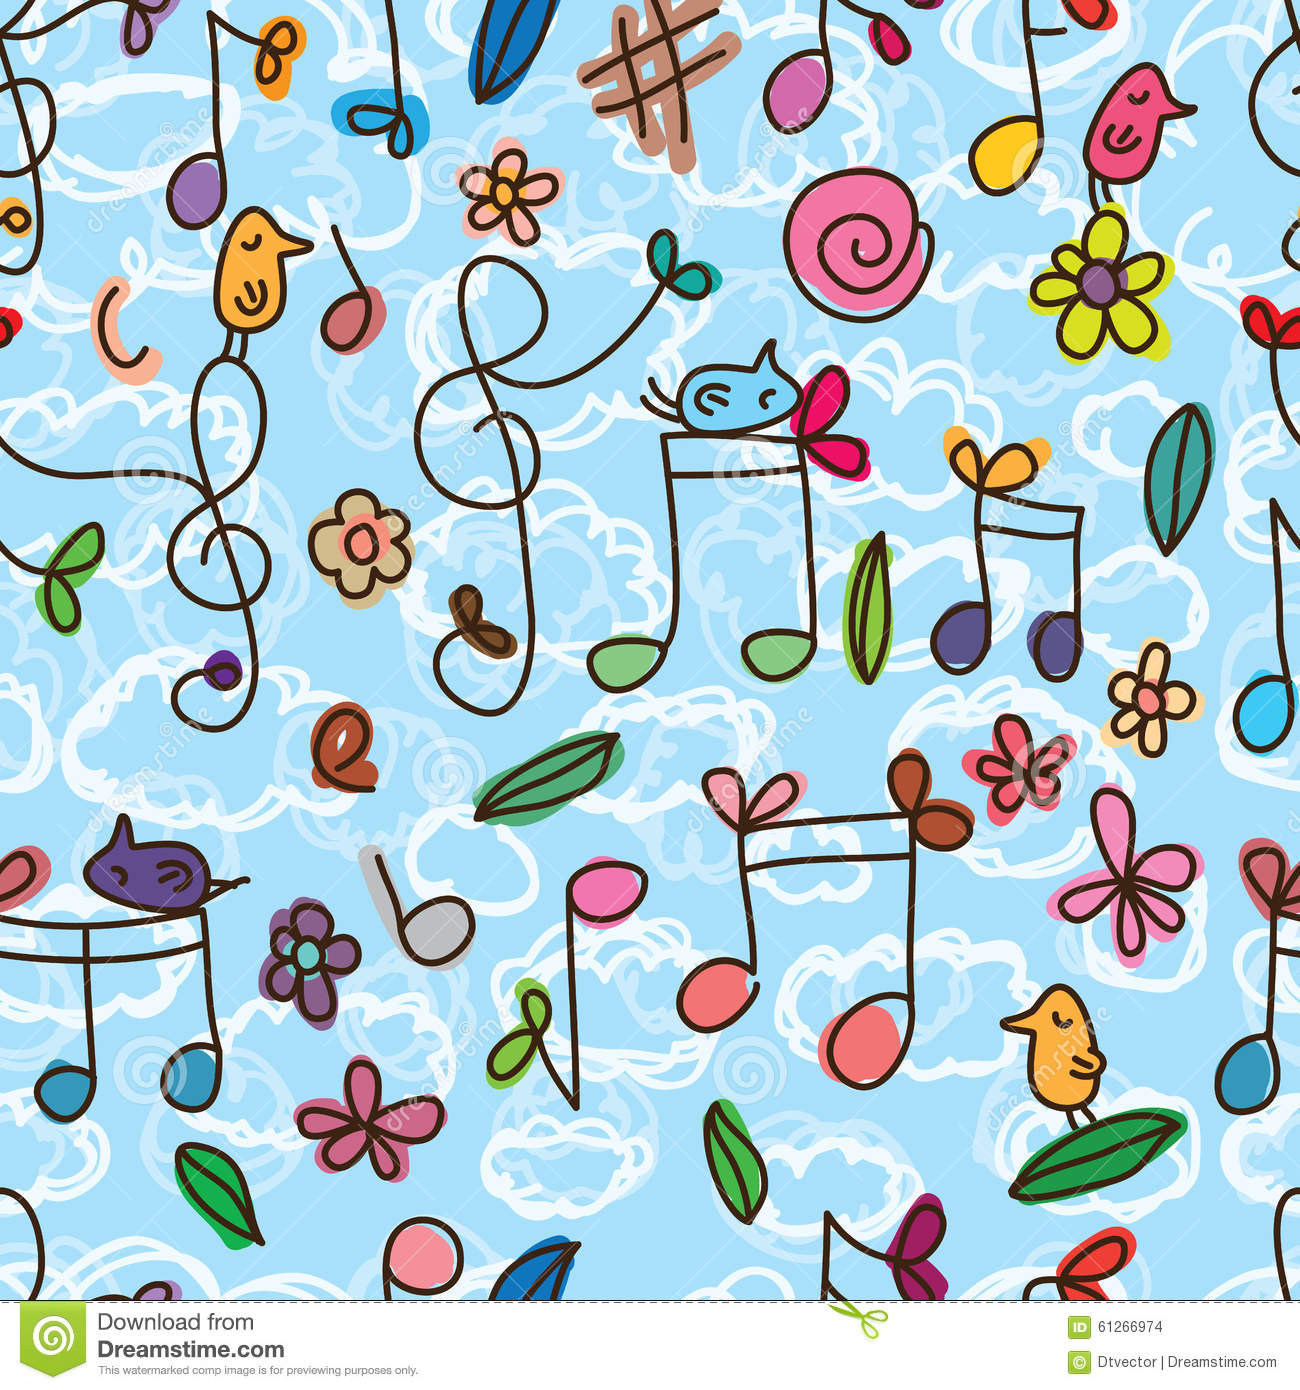 Music Note Cute Bird Seamless Pattern Stock Vector Illustration Of